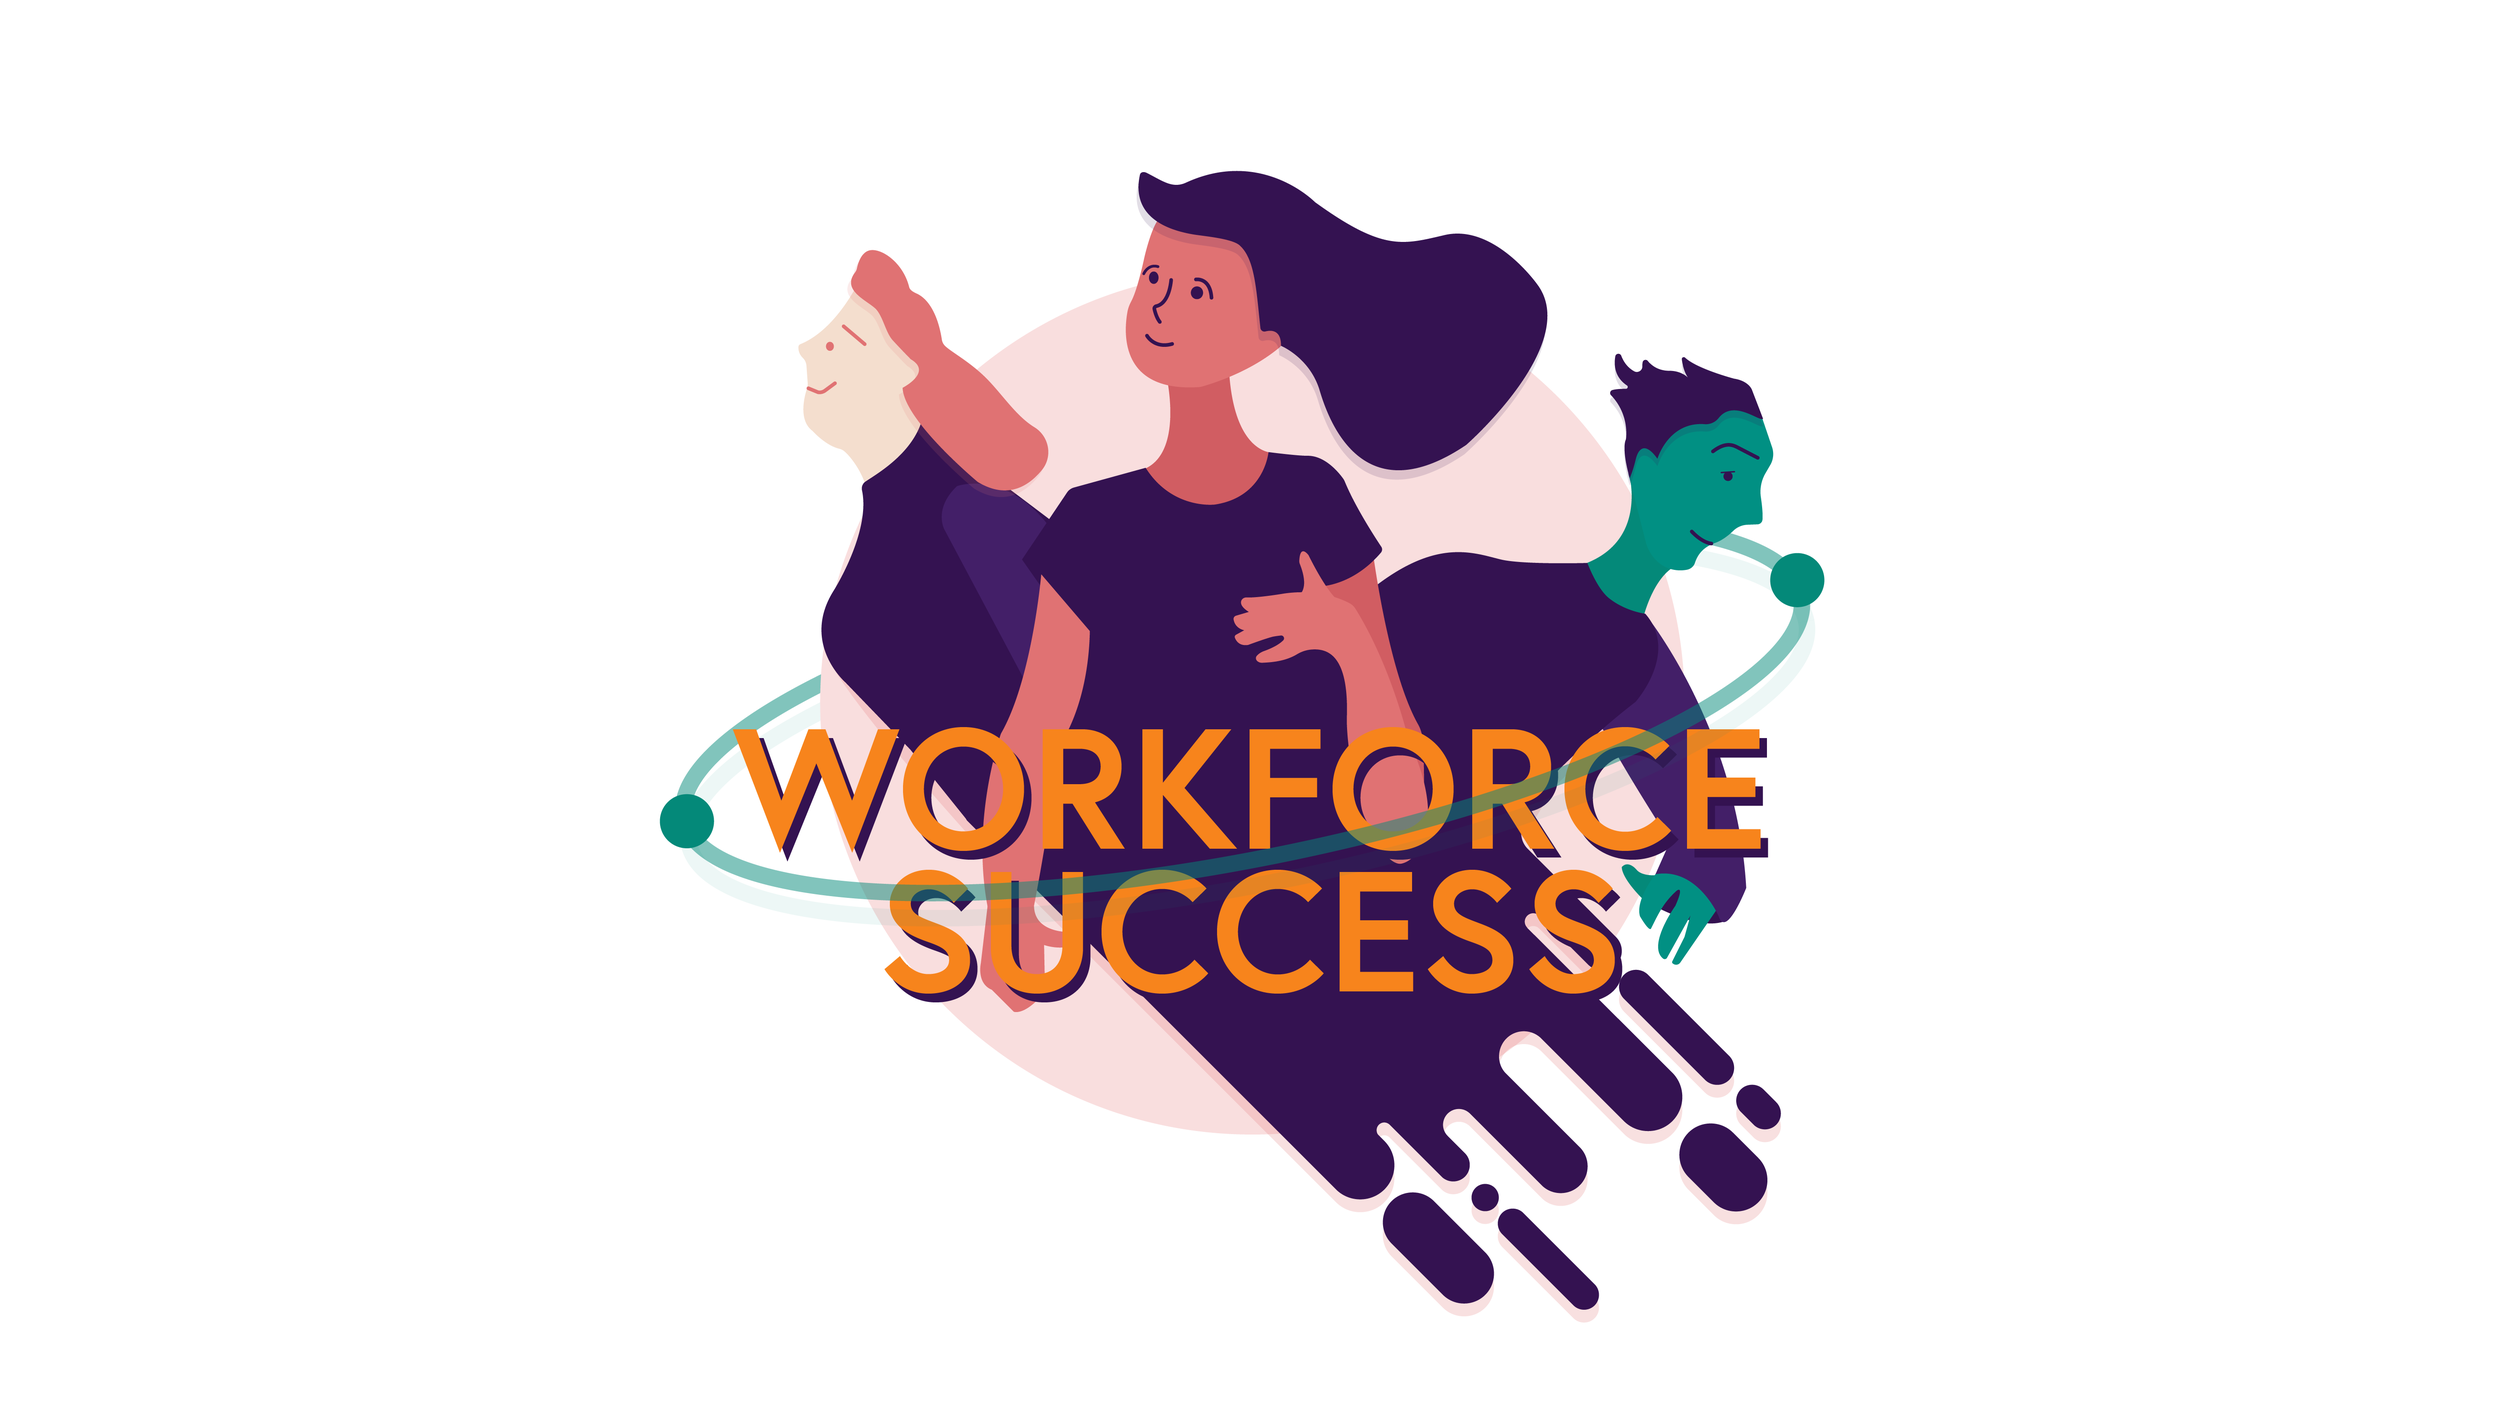 WorkforceSuccessBrings.png